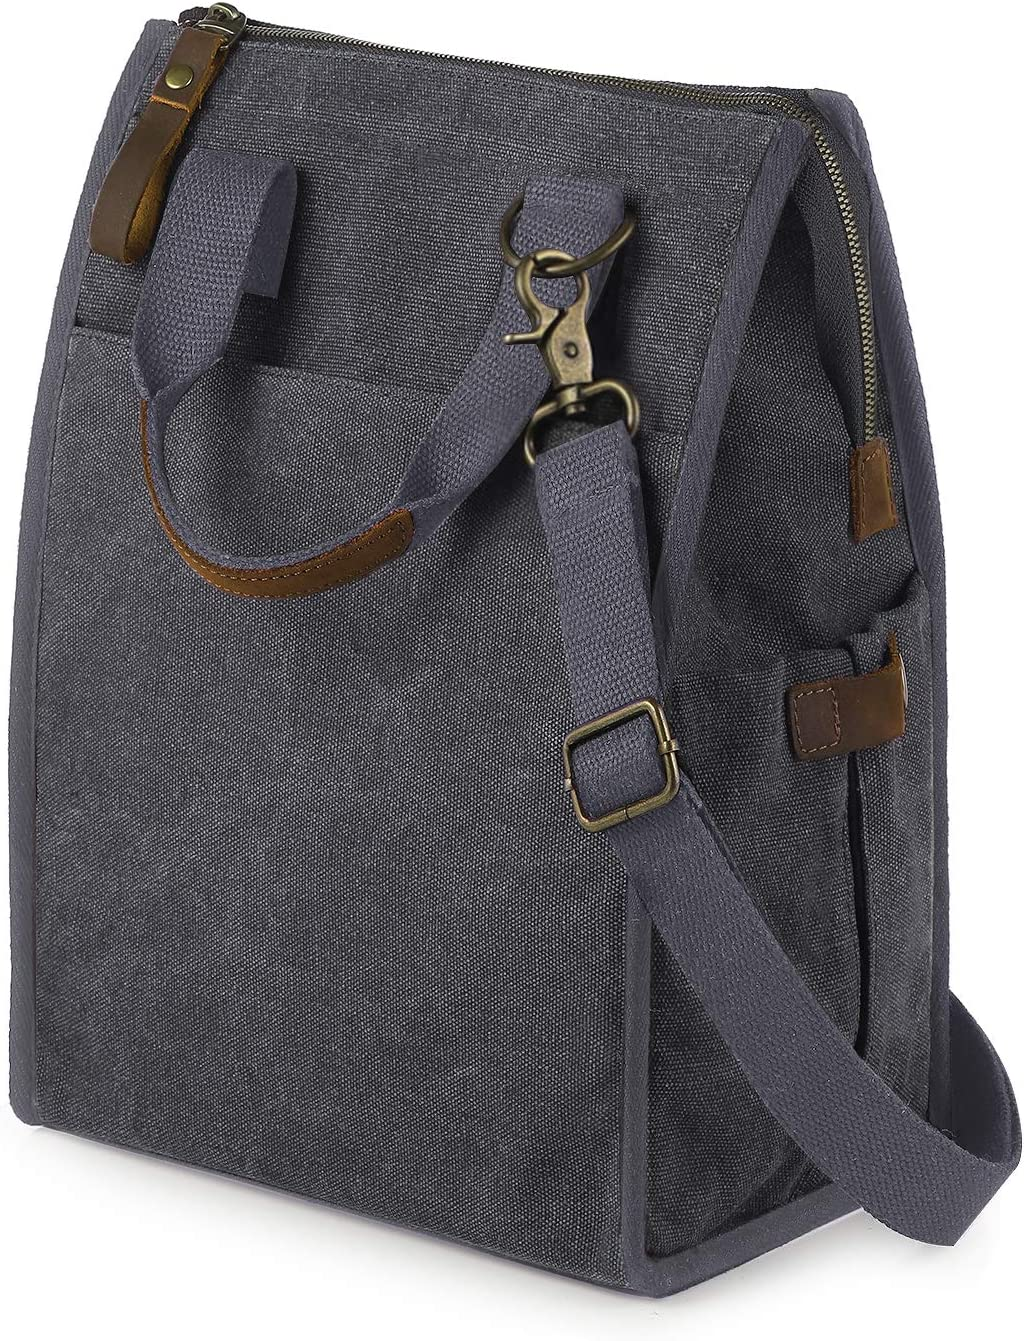 SMRITI Lunch Bag Canvas Lunch Container for Men Women Kids Insulated Stasher Bag Leakproof Cooler for Work Office School Picnic Zipper Closure Crazy Horse Leather Handle Adjustable Strap(Light Grey2)